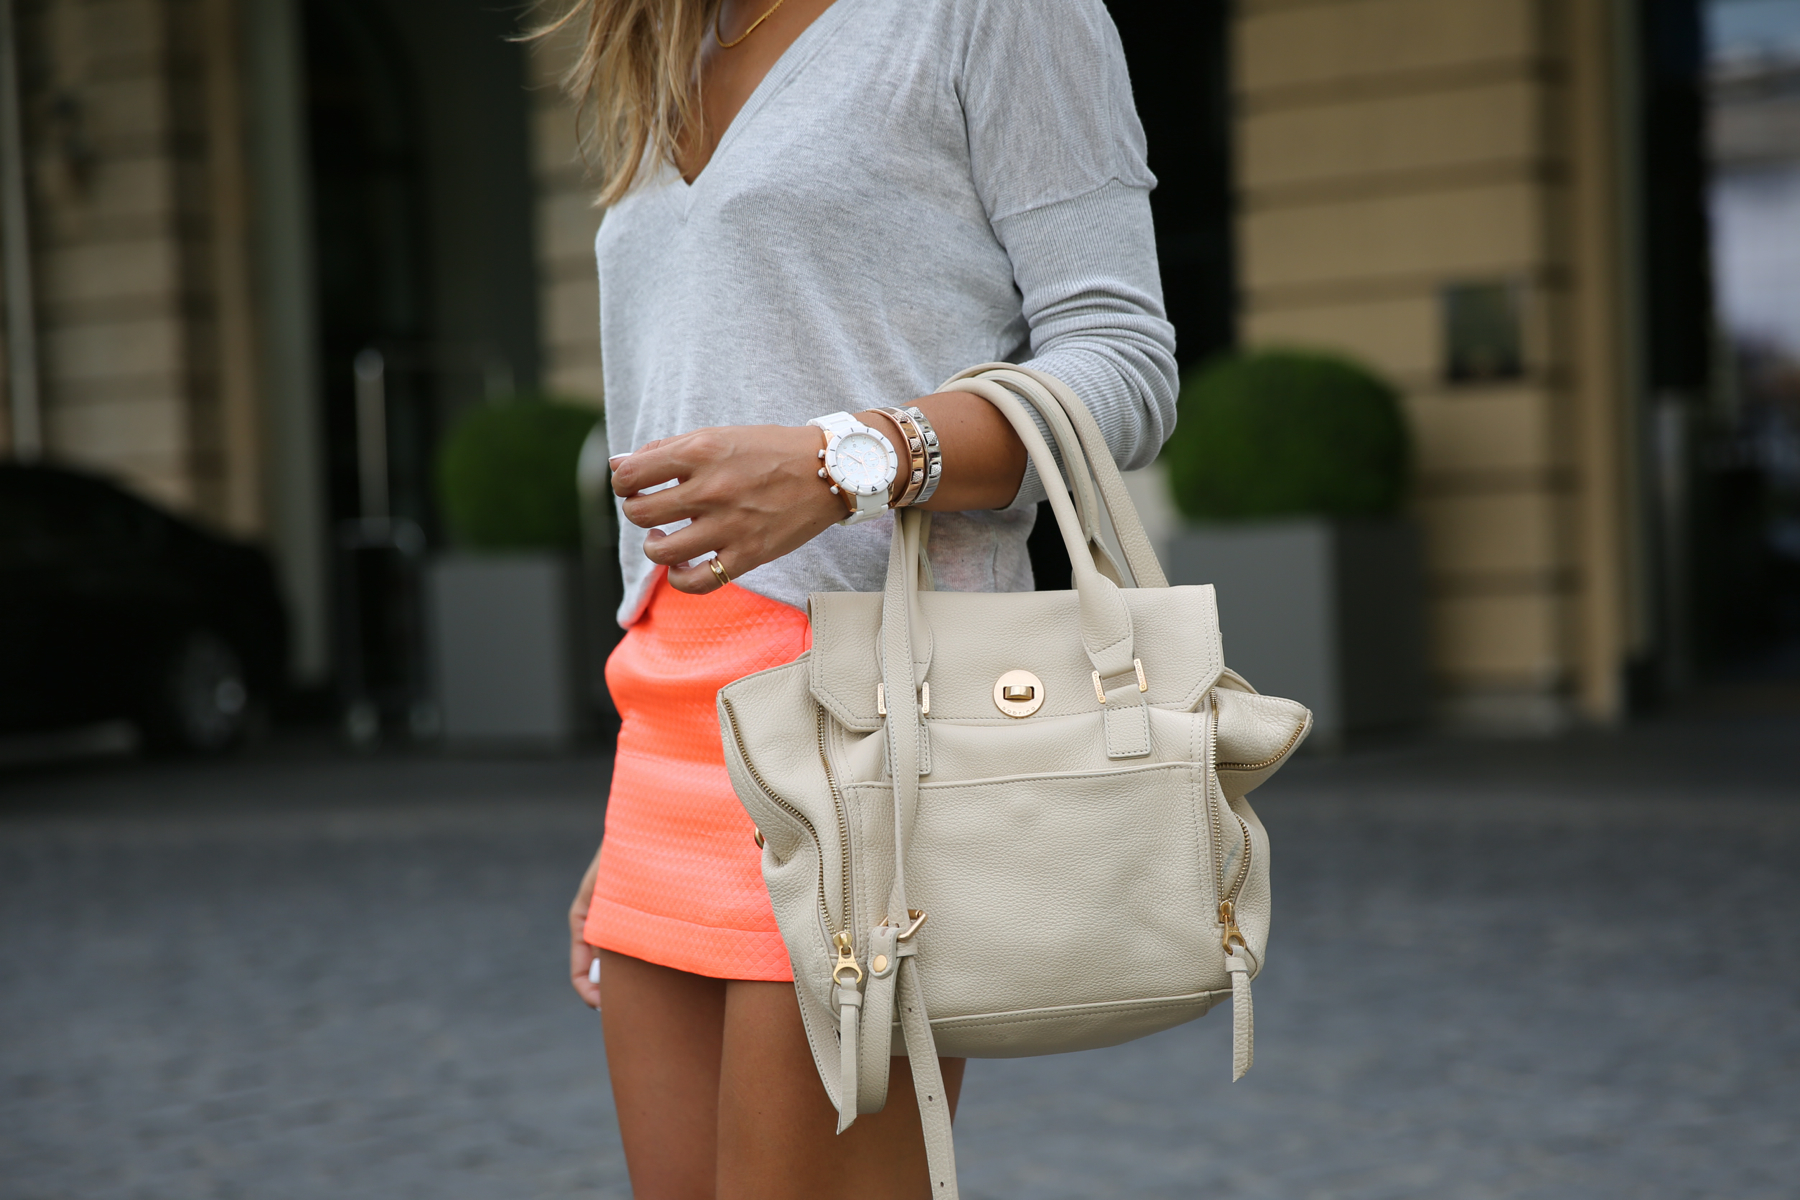 trendy_taste-look-outfit-street_style-ootd-blog-blogger-fashion_spain-moda_españa-primavera-orange-fluo-naranja_fluor_falda-sandalias_plata-silver_sandals-asos-basic_sweater-nine_west-6